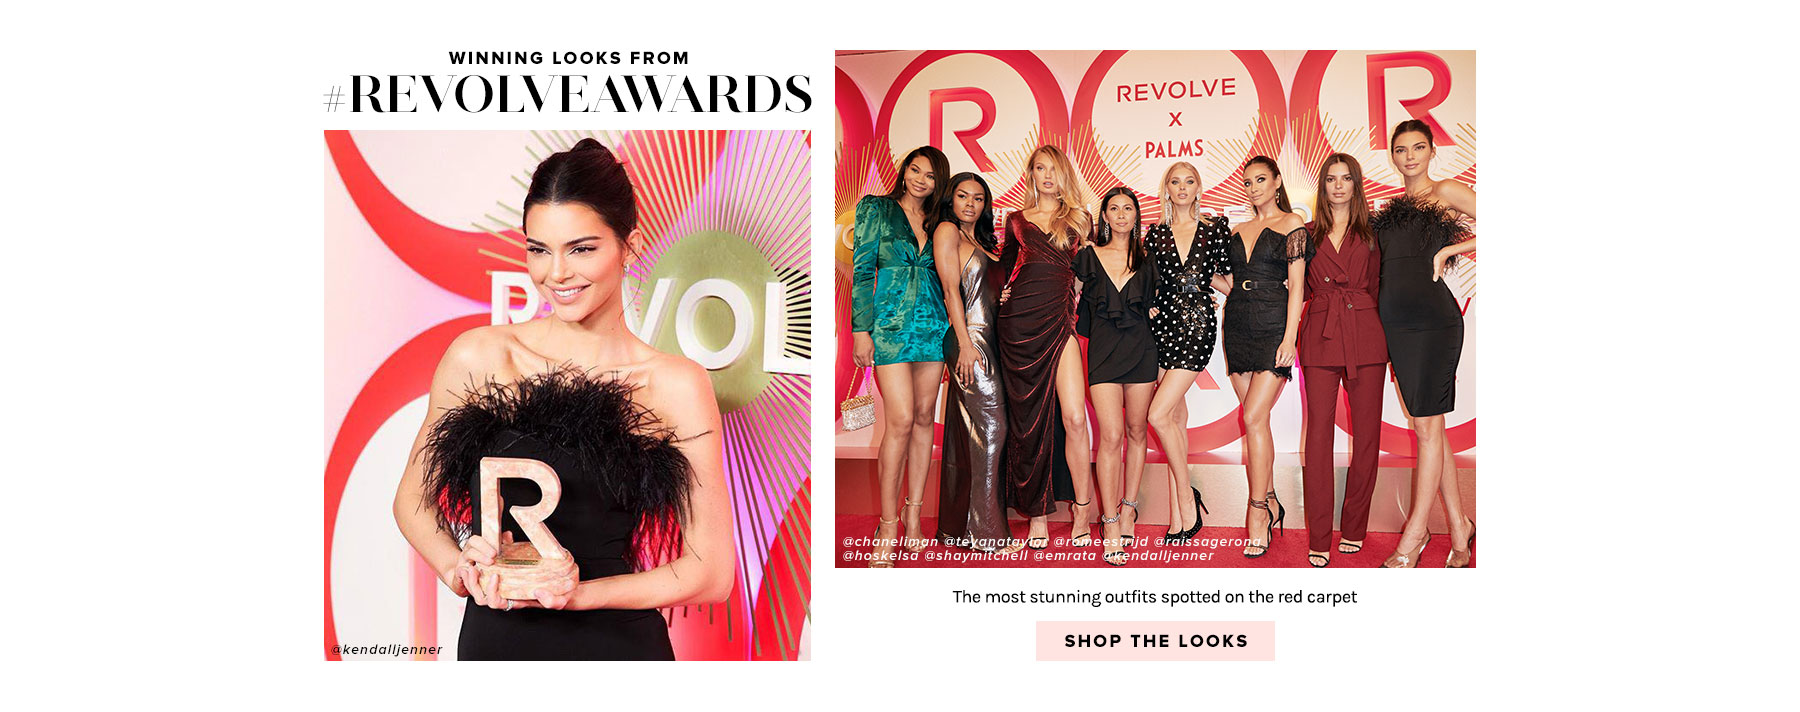 Winning Looks From REVOLVEAWARDS. The most stunning outfits spotted on the red carpet. Shop the looks.